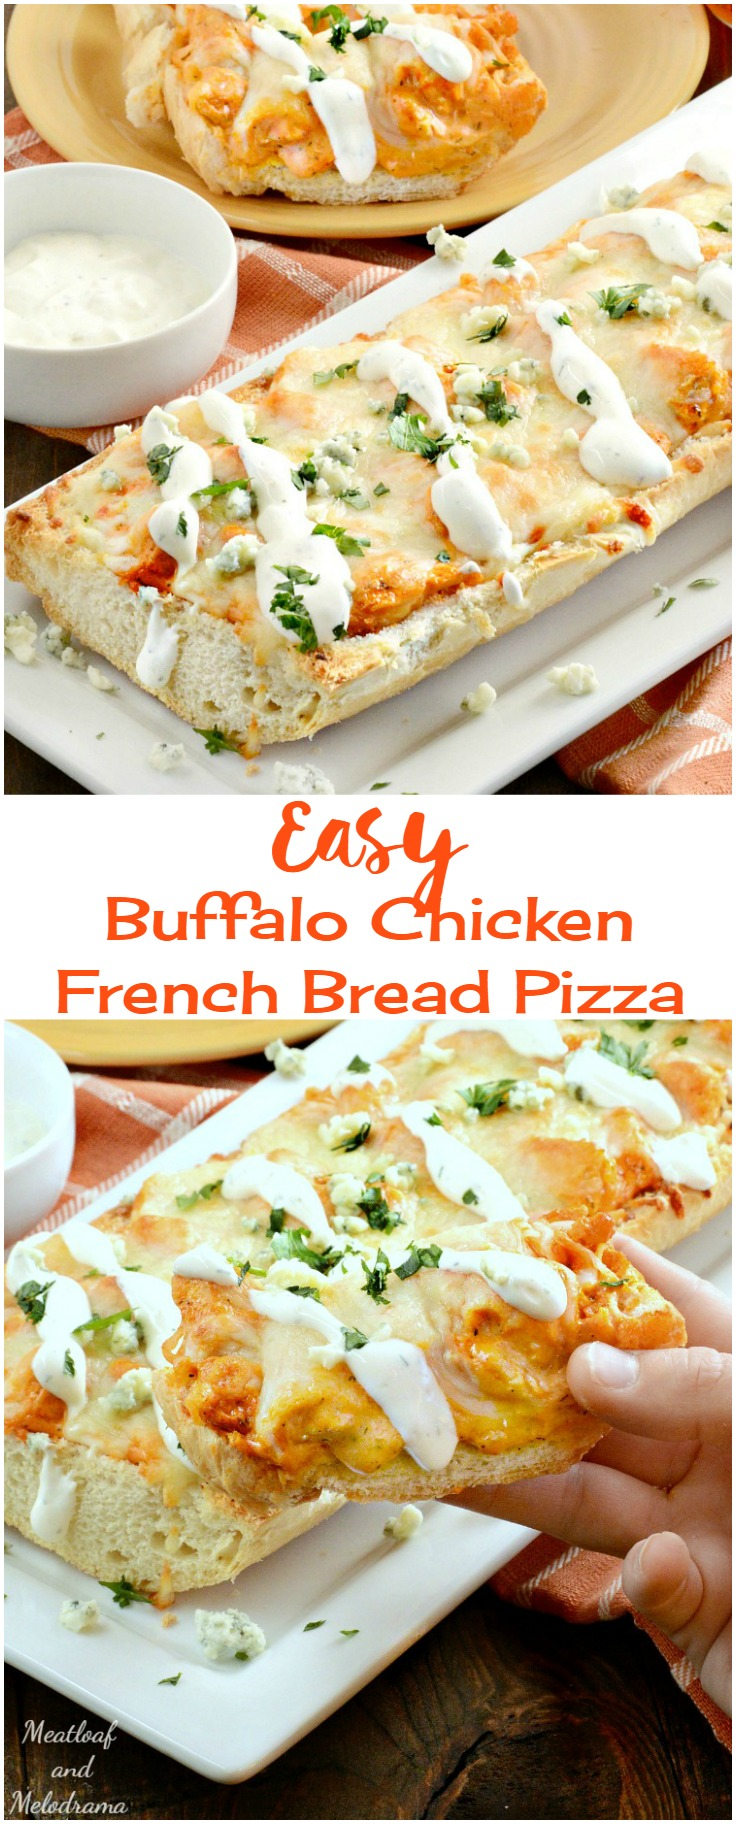 easy-buffalo-chicken-french-bread-pizza-recipe